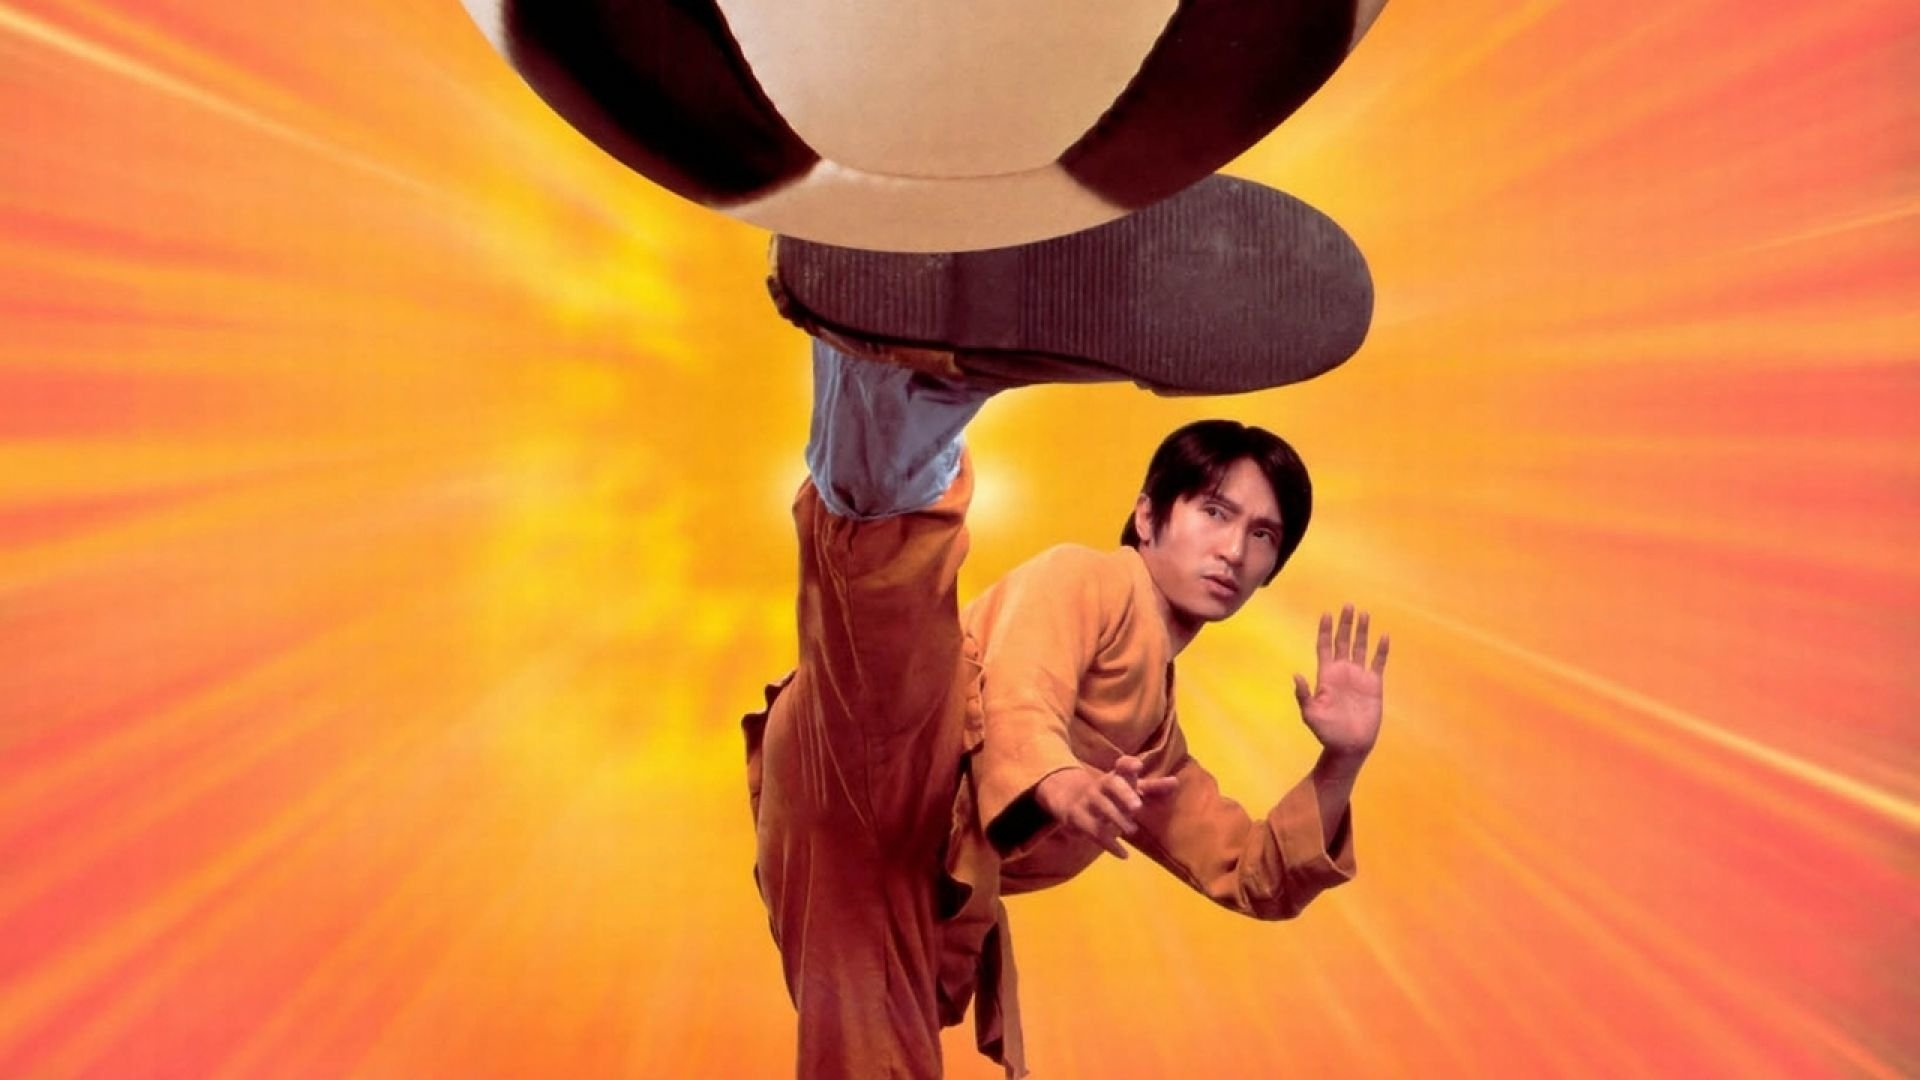 Shaolin soccer wallpaper